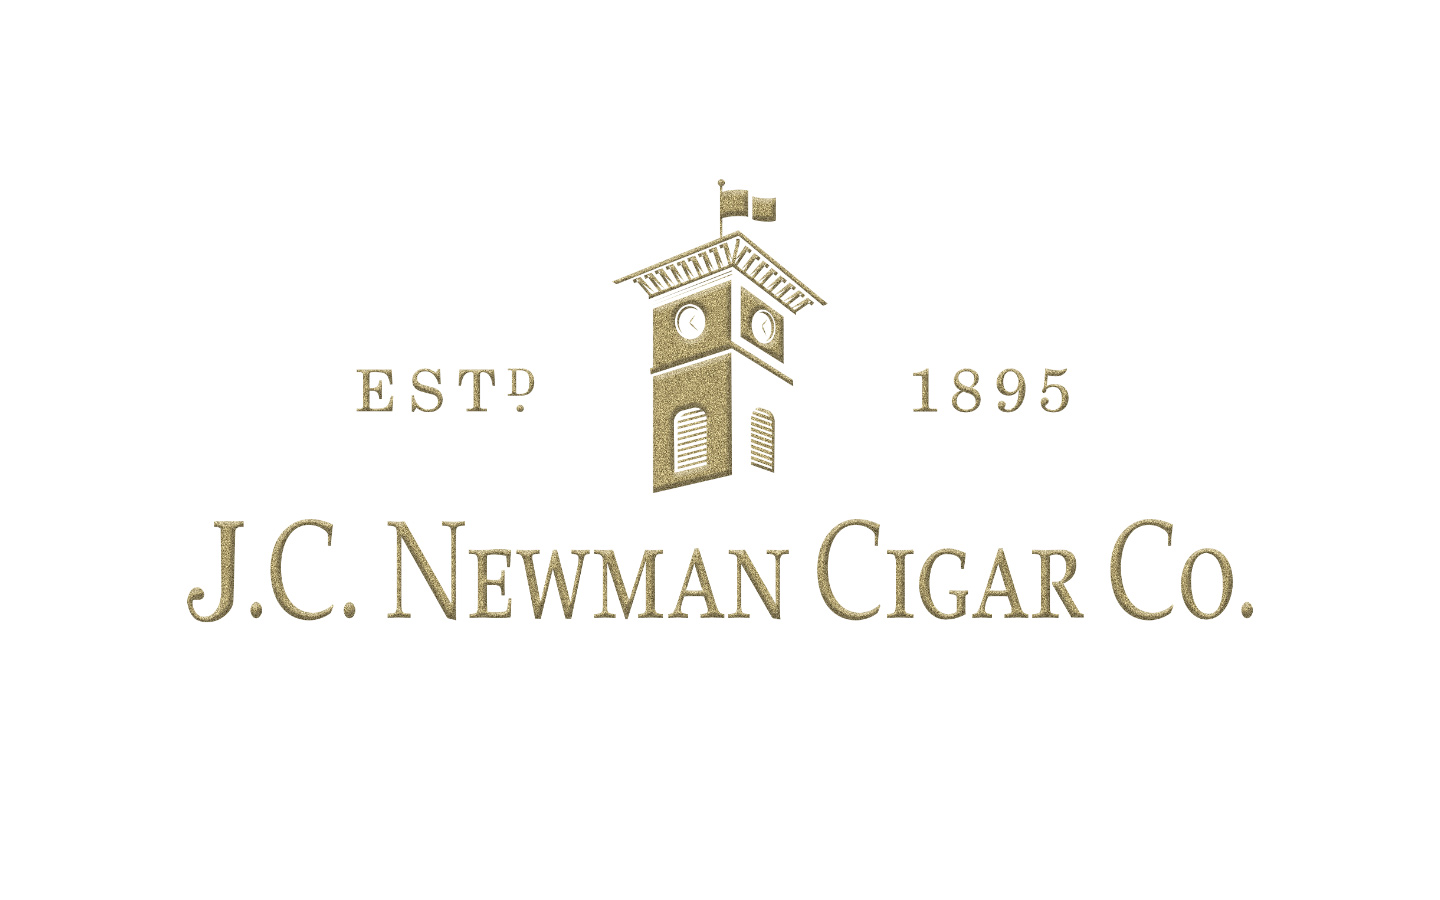 J.C. Newman Cigar Co. logo